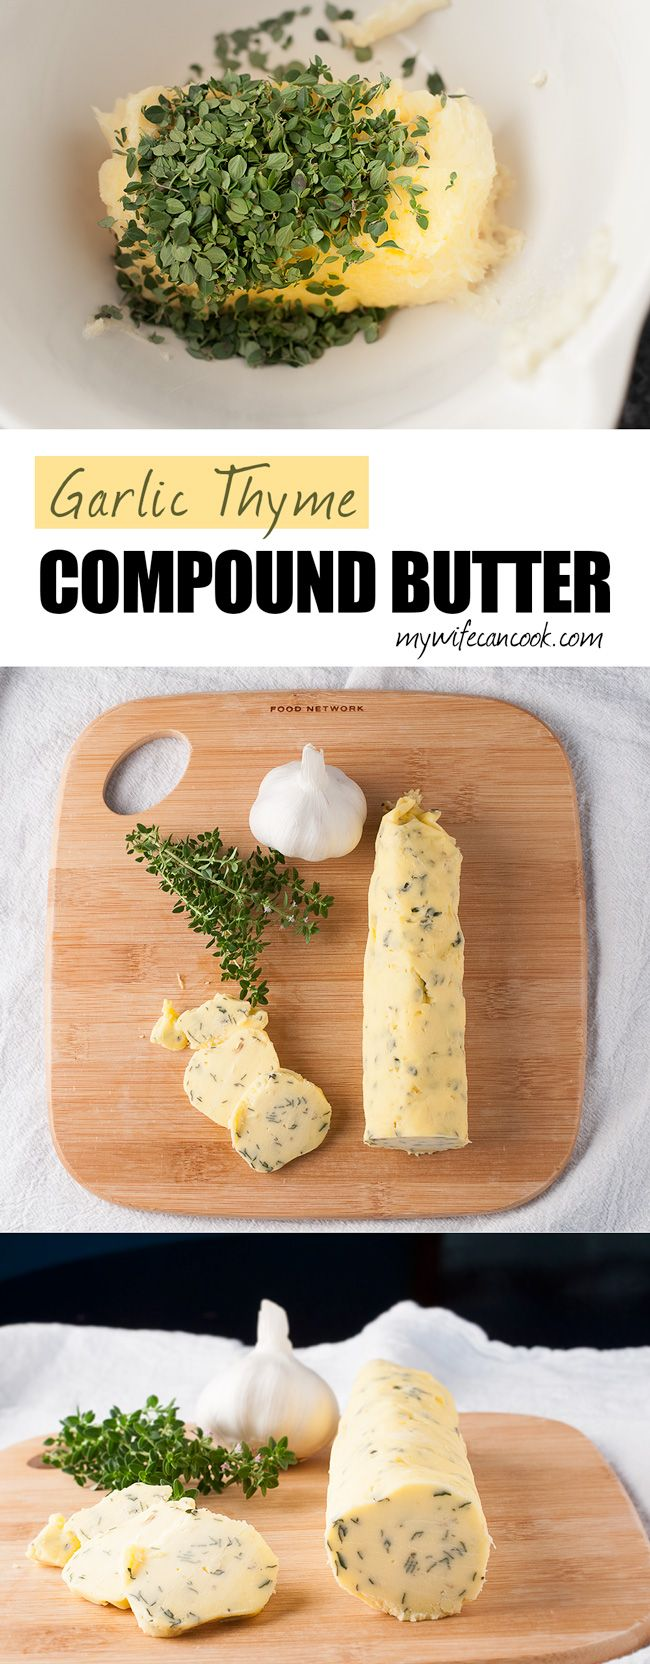 Garlic Thyme Compound Butter! Aaah, butter. Sweet, sweet butter. You make everything taste so good. Today we'll show you how to make some amazing Garlic Thyme Compound Butter, we'll delve into the Butter vs. Margarine Debate, we'll cut through the fat (give you the skinny on trans fats and saturated fats), and we'll unearth some hidden talents of butter. www.mywifecancook...